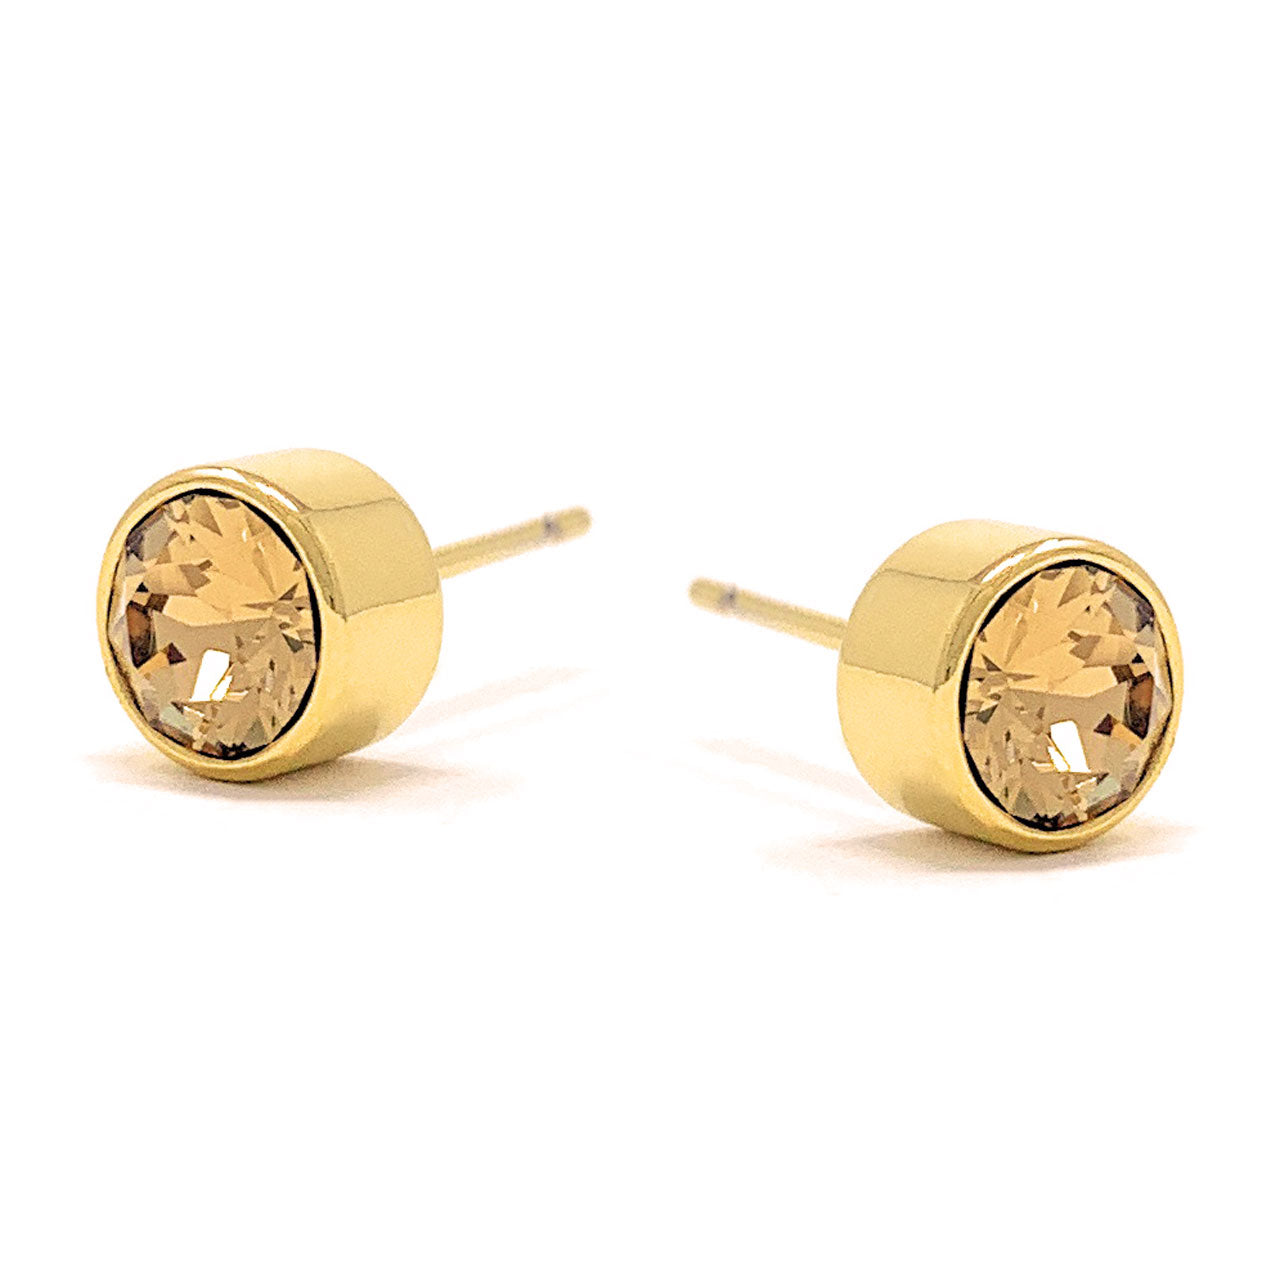 Harley Small Stud Earrings with Yellow Brown Light Topaz Round Crystals from Swarovski Gold Plated - Ed Heart